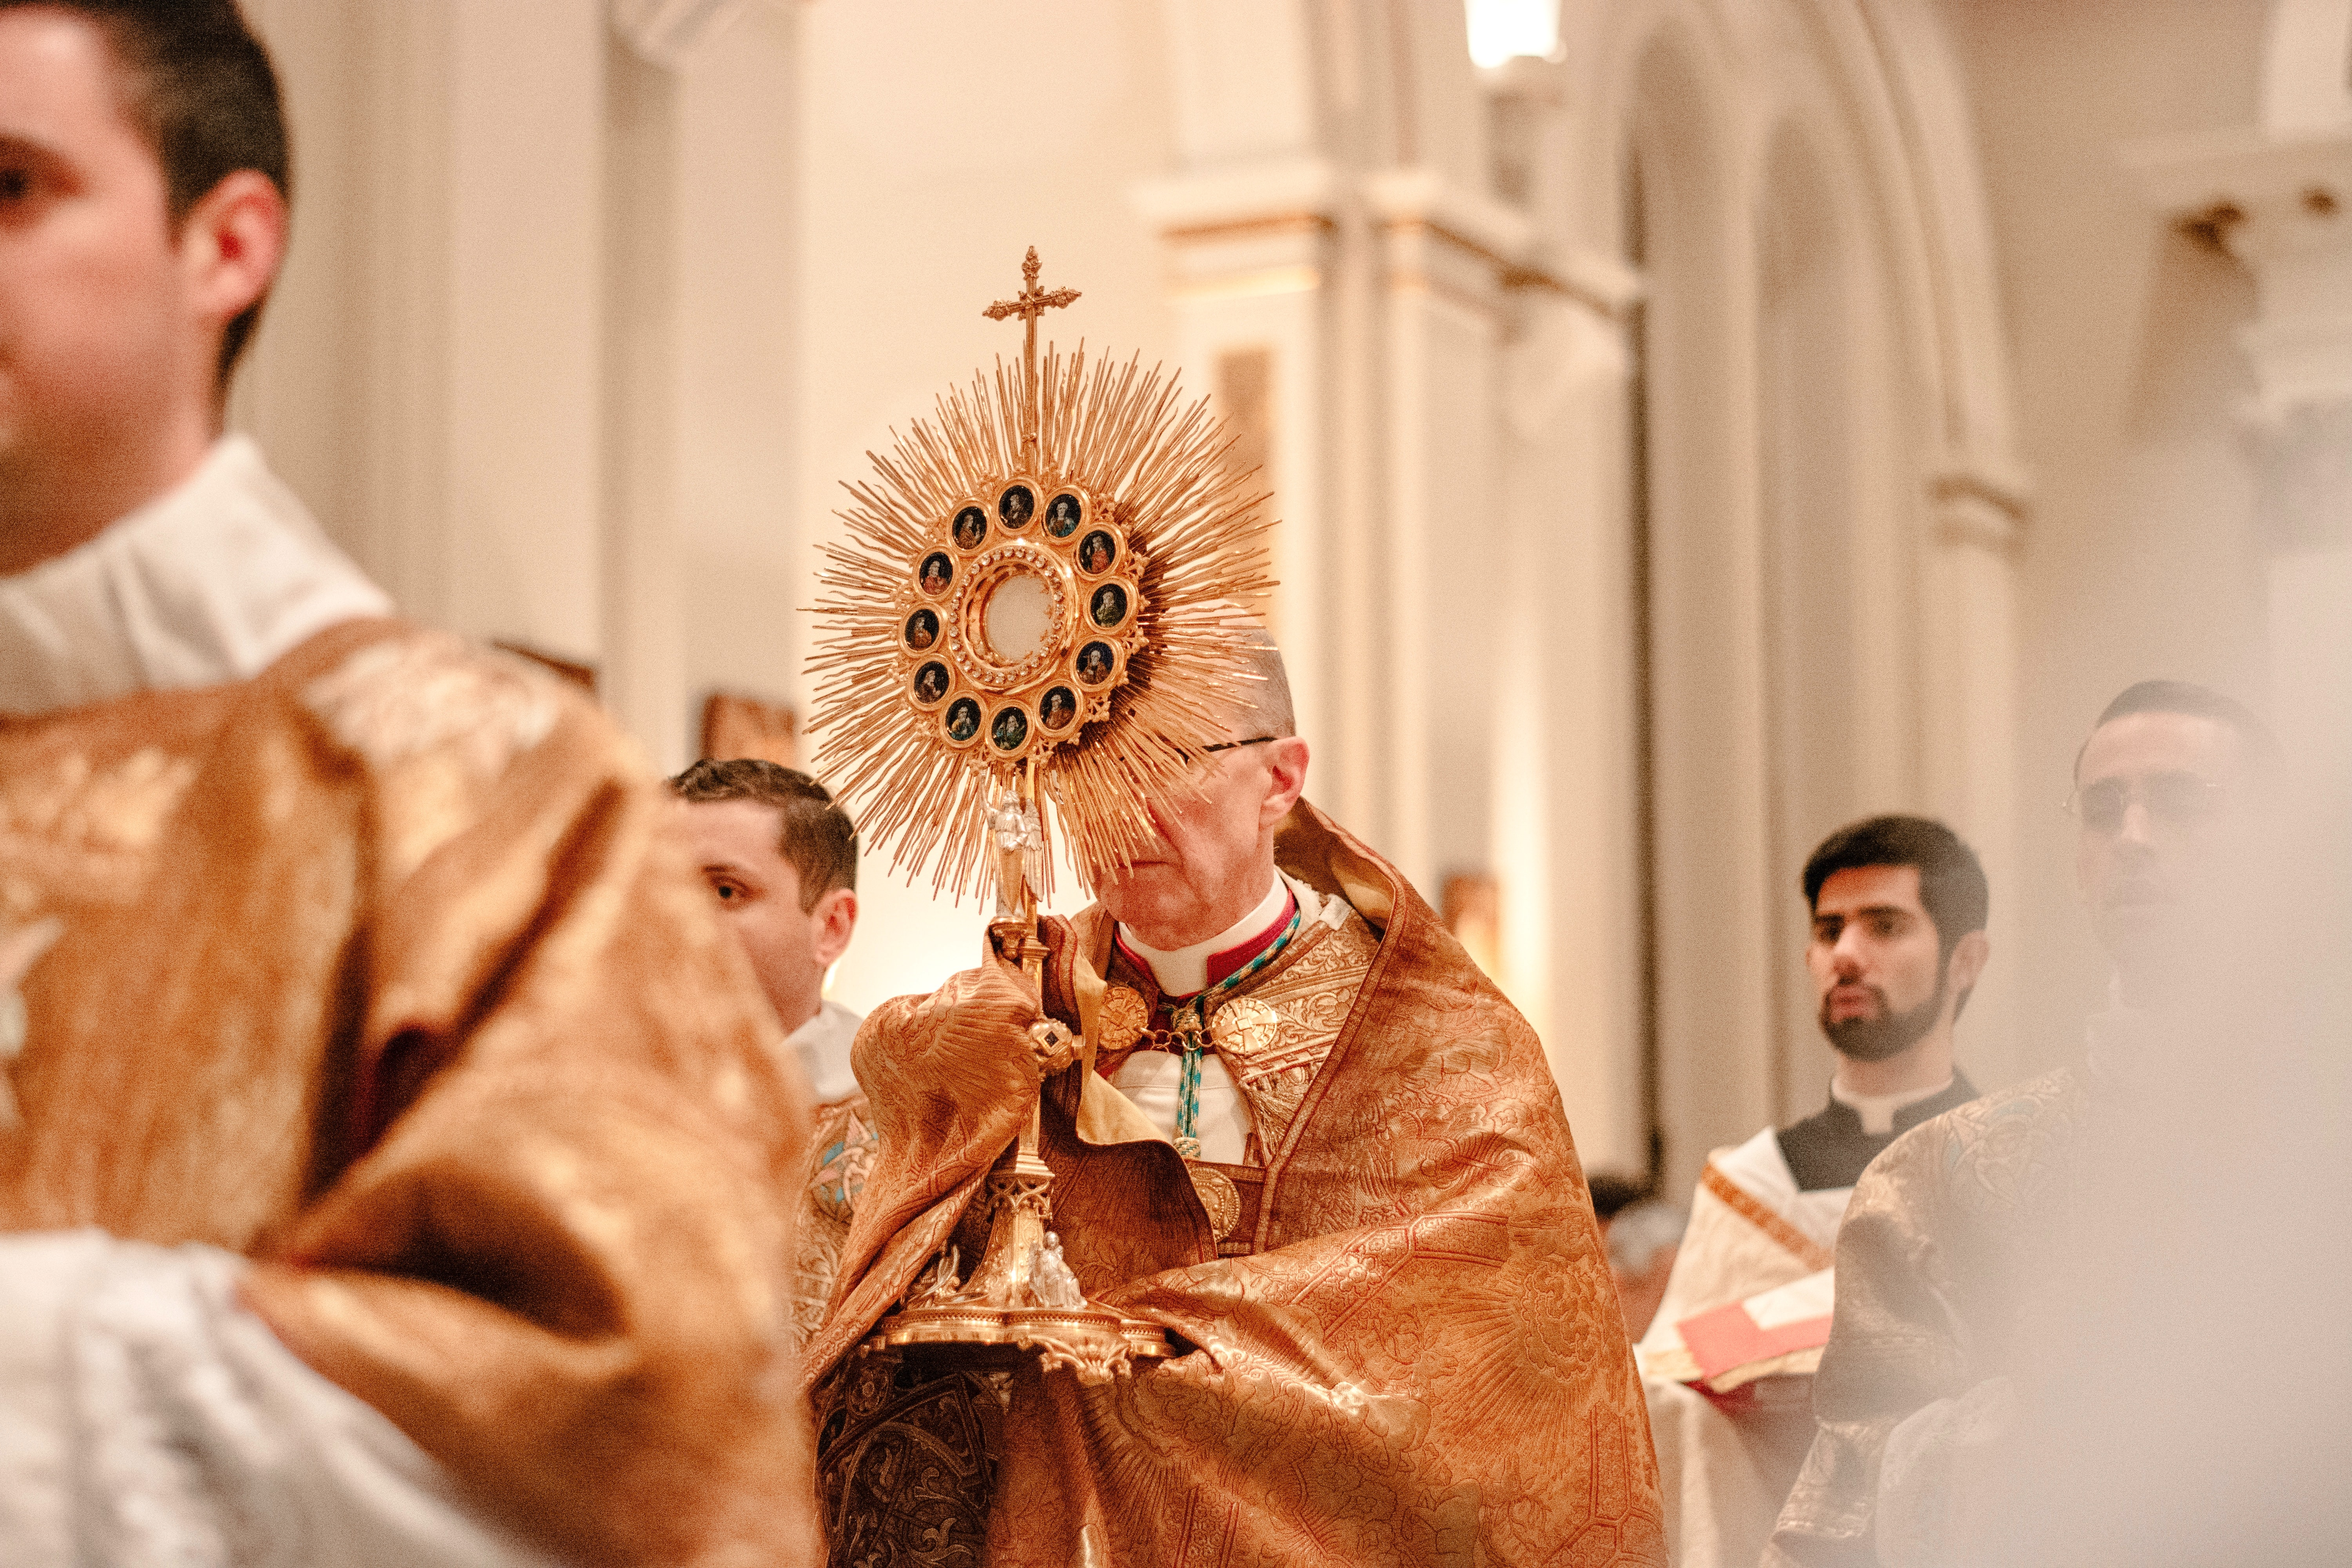 Clericalism as a Cultural Pattern: Aiding and Abetting Abuse